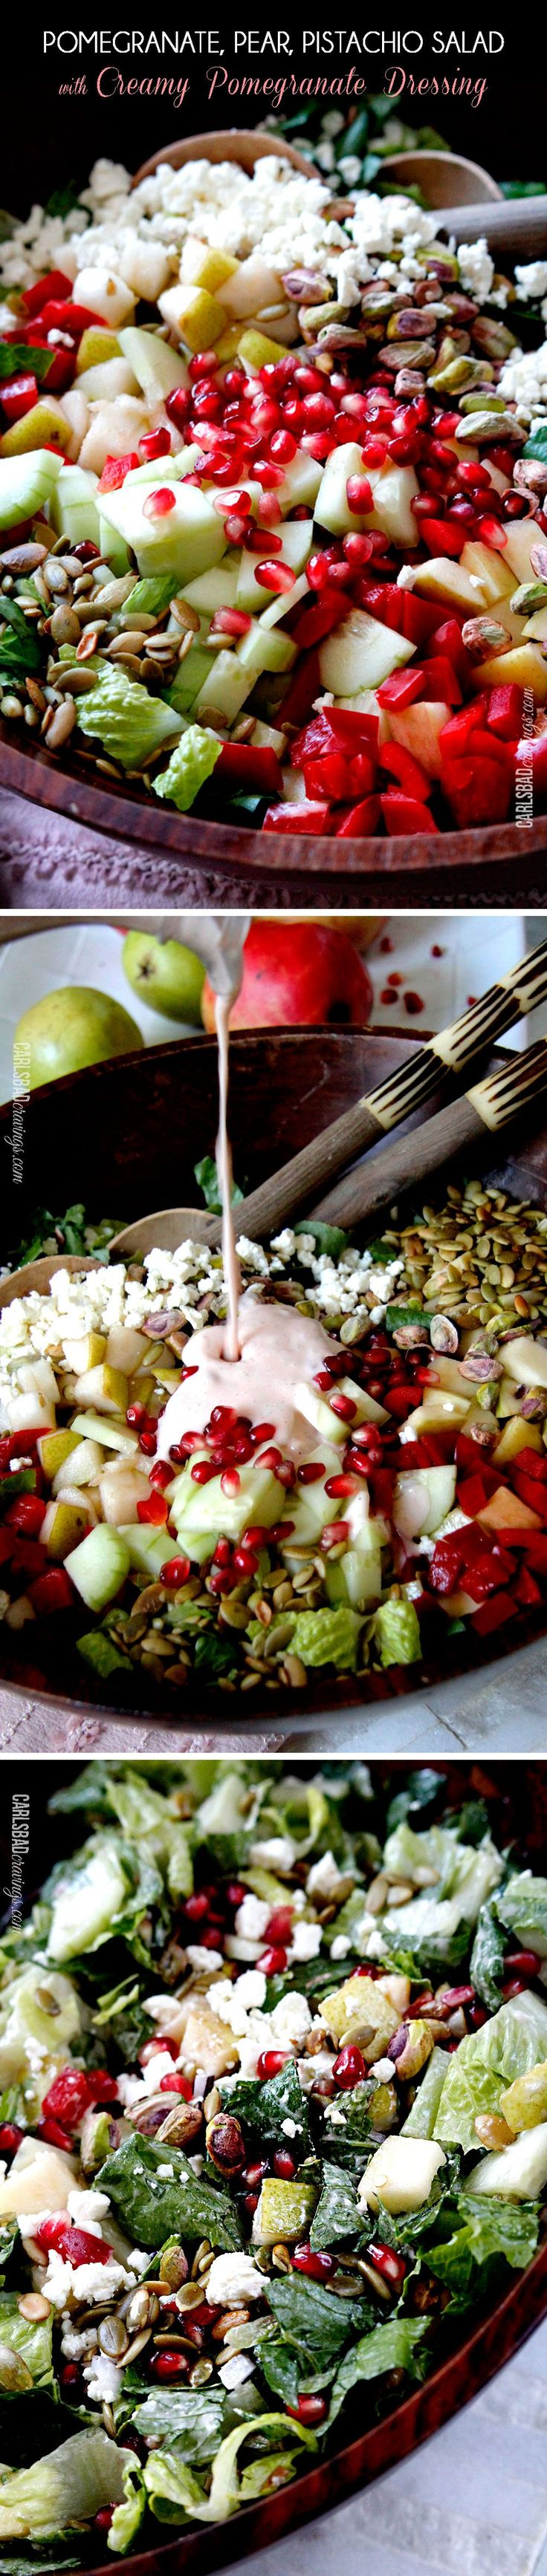 This salad is SO addictingly delicious! Sweet pomegranate arils, pears, apples, crunchy cucumbers and peppers complimented by salty roasted pistachios and pepitas all doused in Creamy Pomegranate Dressing.